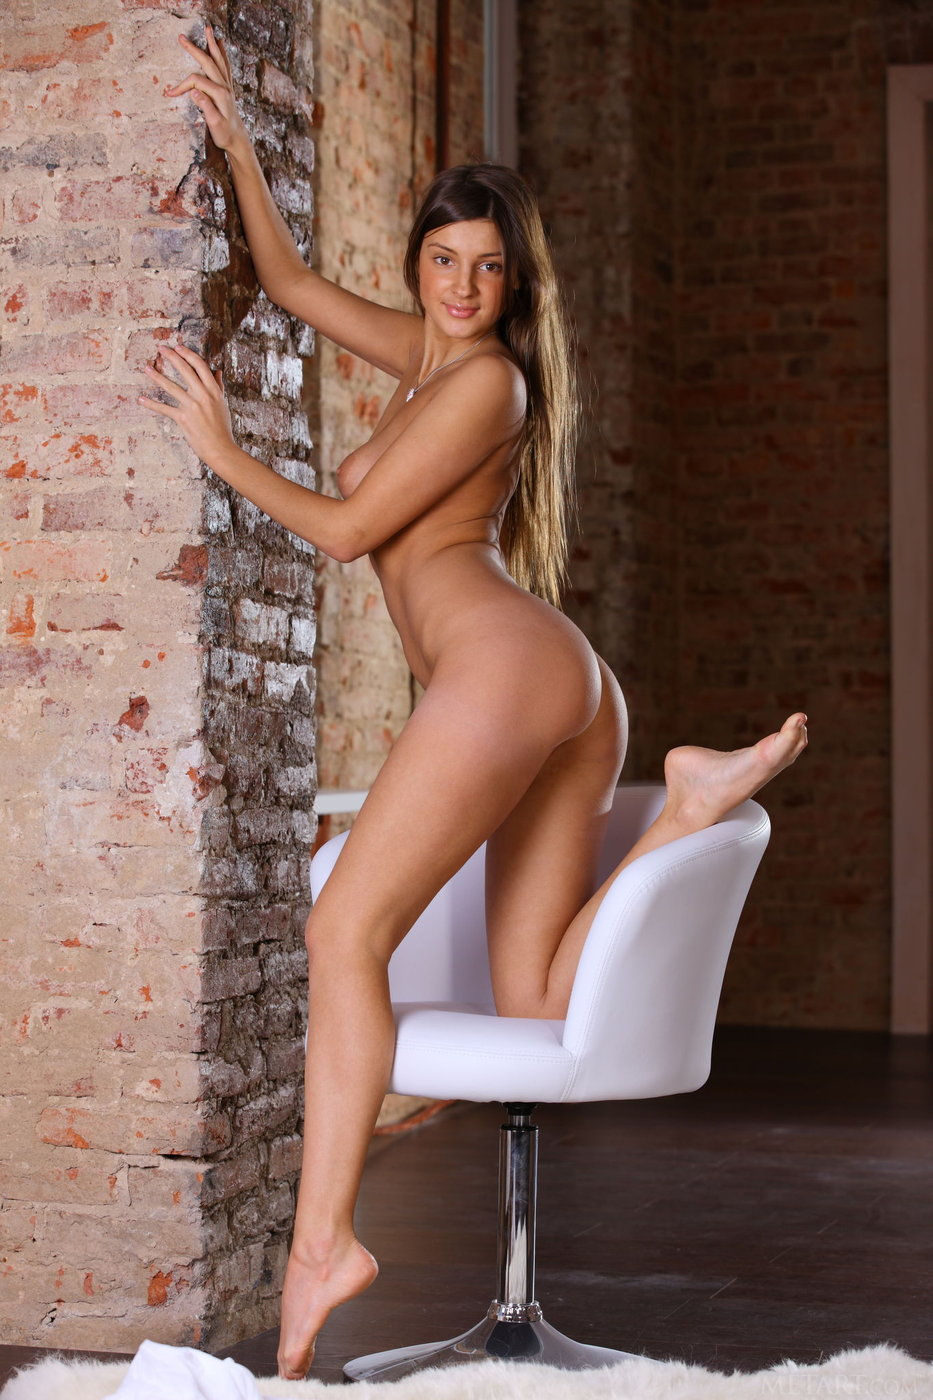 White get-up tanned brunette showing those slender legs on a chair